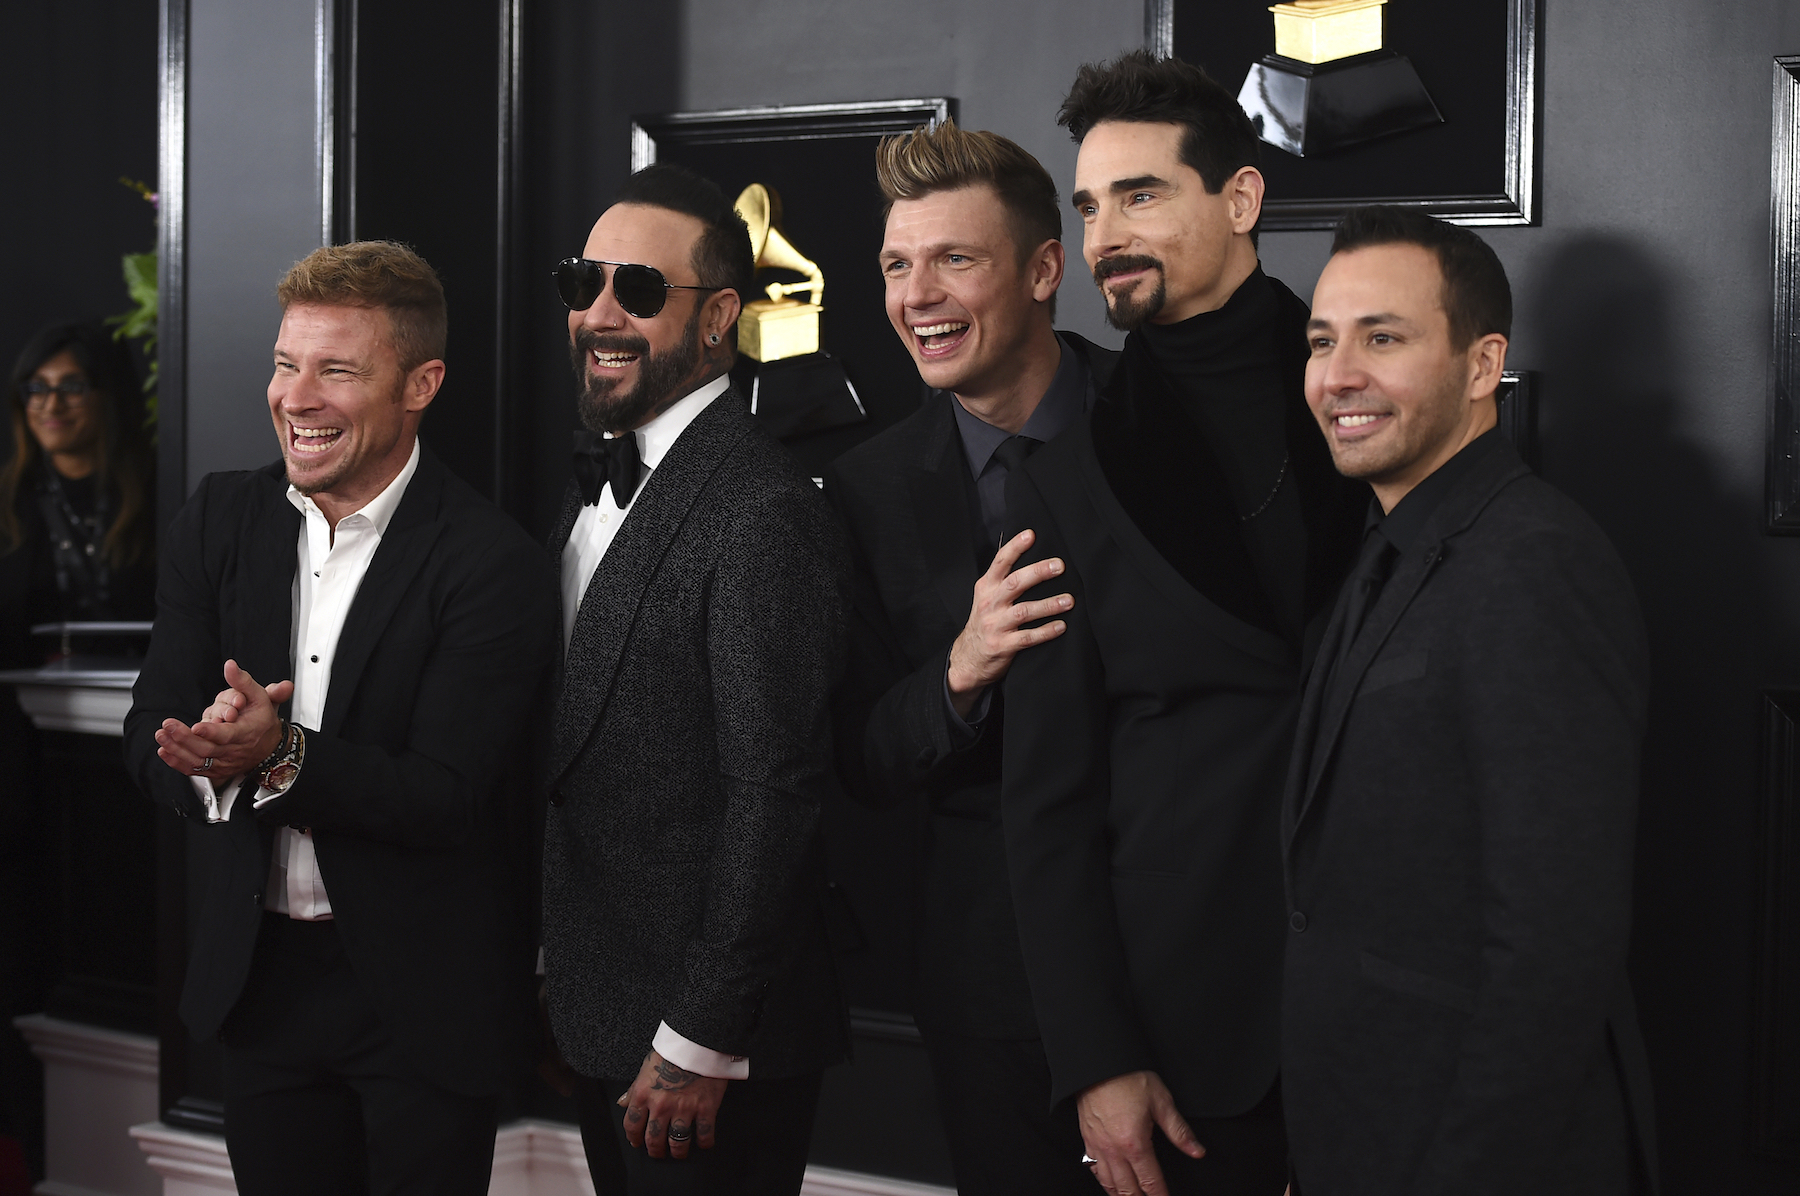 <div class='meta'><div class='origin-logo' data-origin='AP'></div><span class='caption-text' data-credit='Jordan Strauss/Invision/AP'>Brian Littrell, from left, AJ McLean, Nick Carter, Kevin Richardson, and Howie Dorough of The Backstreet Boys arrive at the 61st annual Grammy Awards.</span></div>